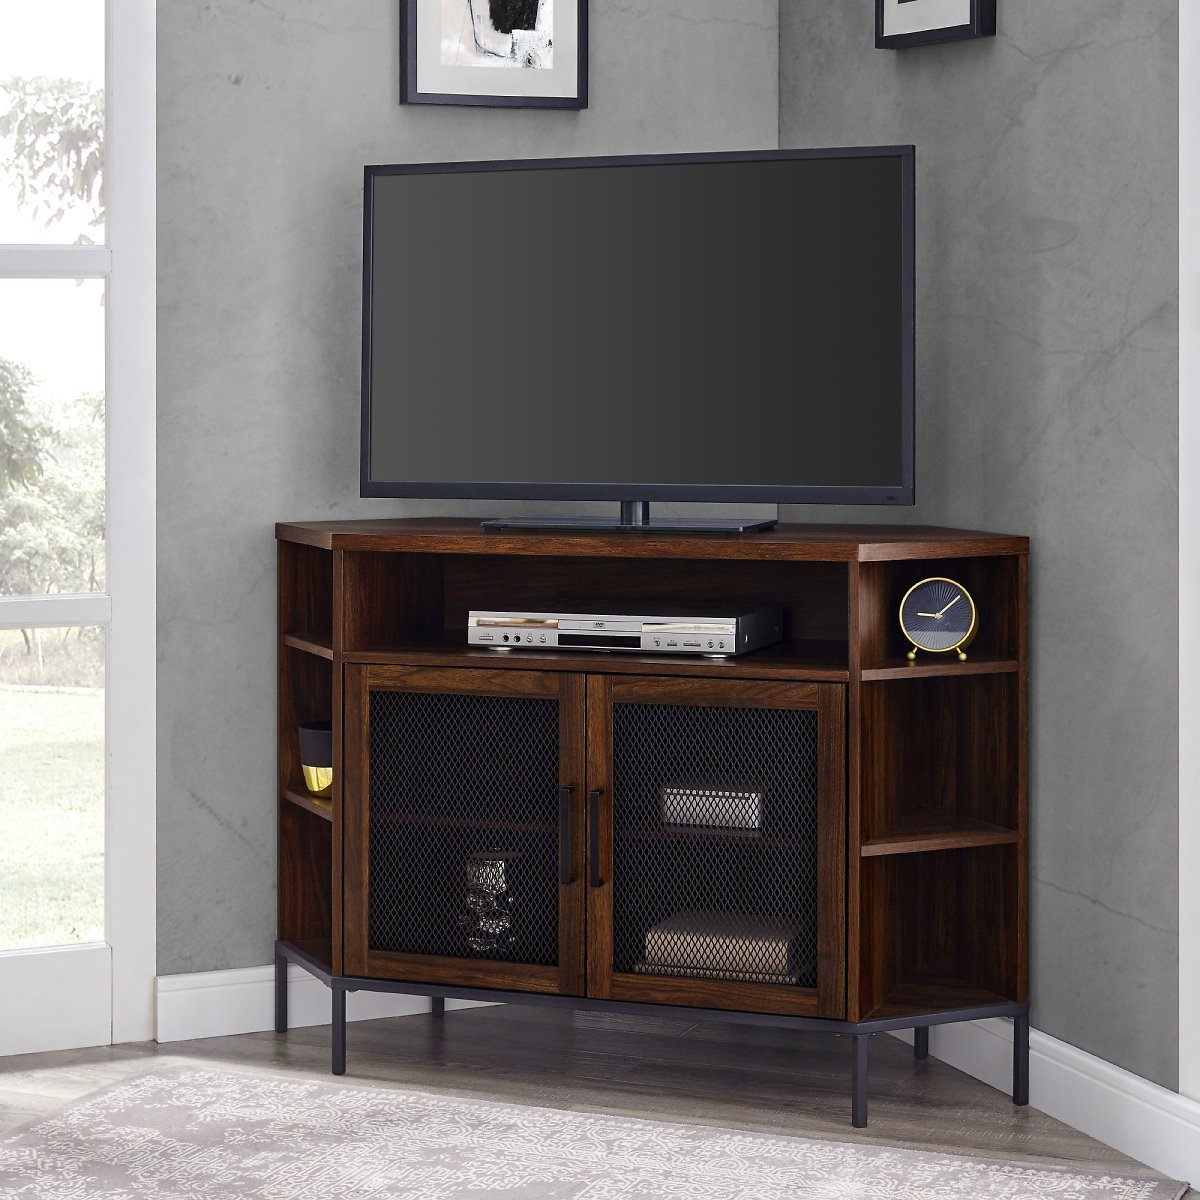 Manor Park Industrial Corner TV Stand for TVs Up to 55